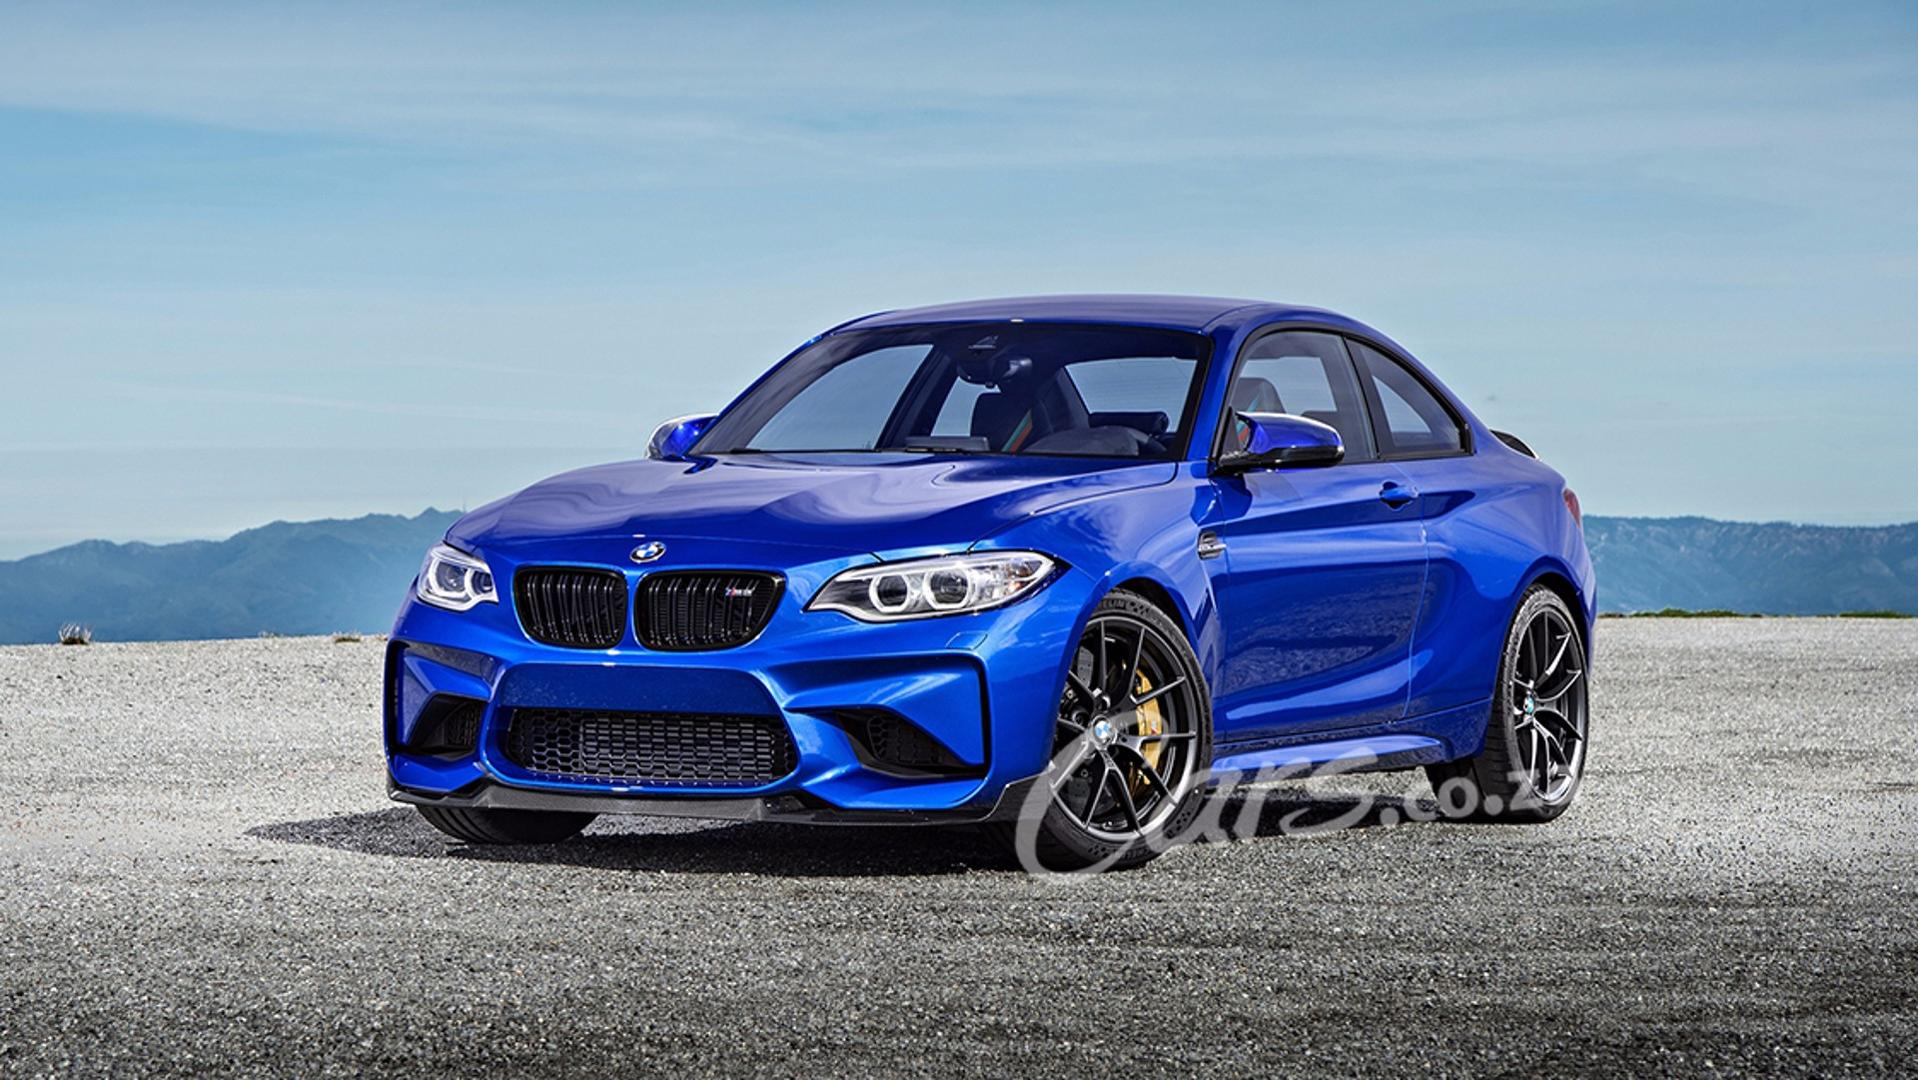 bmw m2 cs details emerge to reveal only 1 000 units will be made. Black Bedroom Furniture Sets. Home Design Ideas